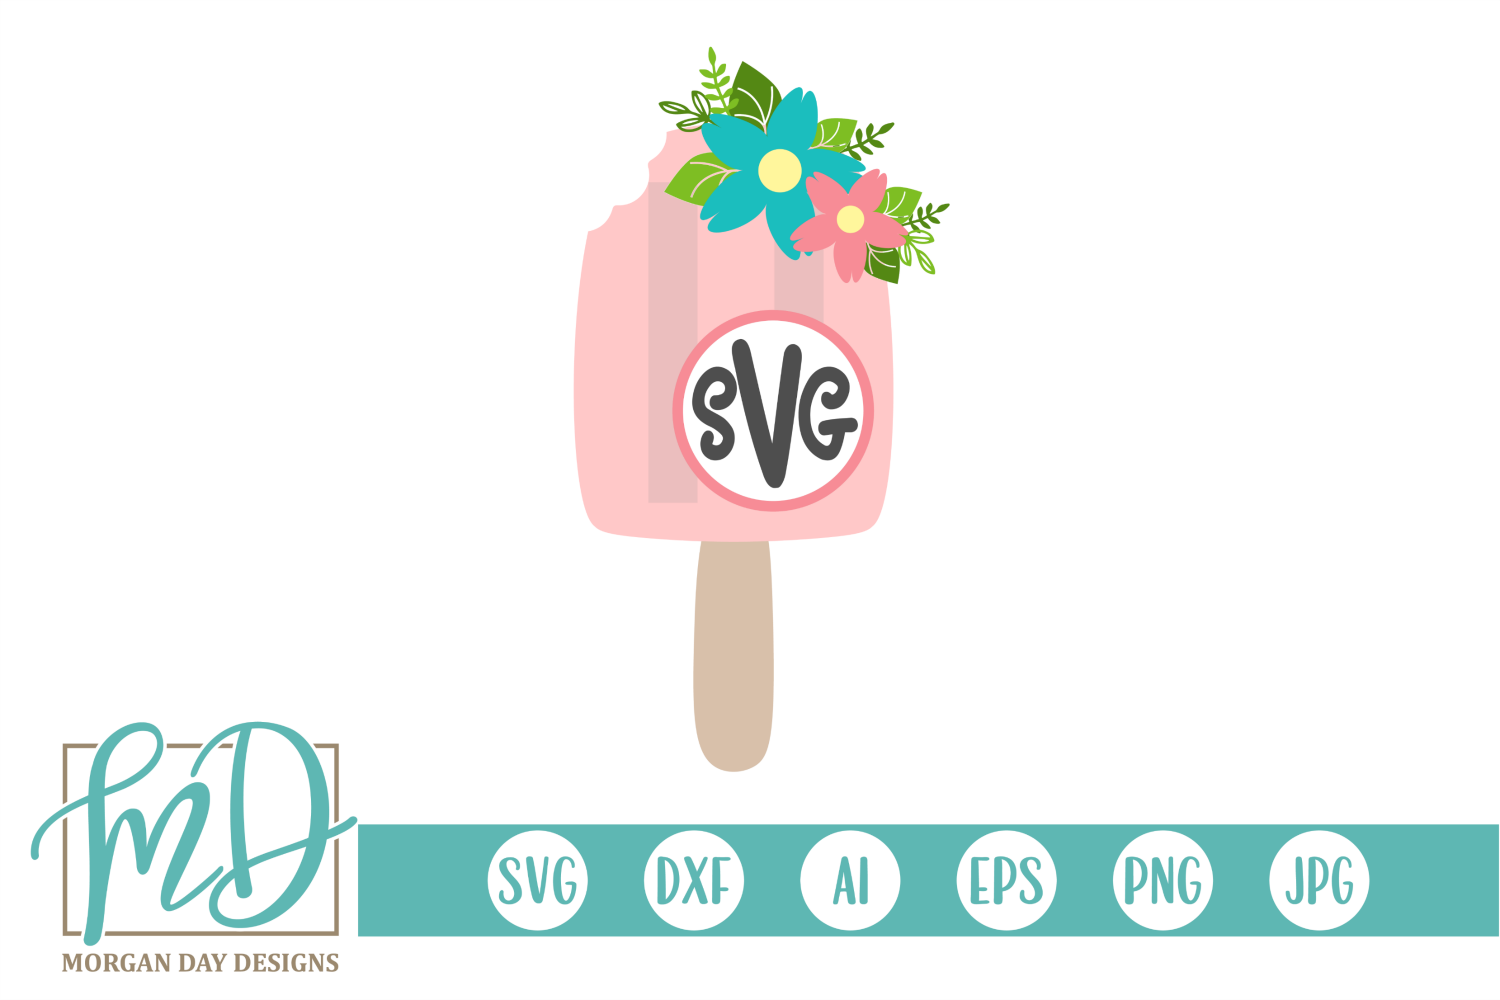 Floral Popsicle Monogram Svg Graphic By Morgan Day Designs Creative Fabrica